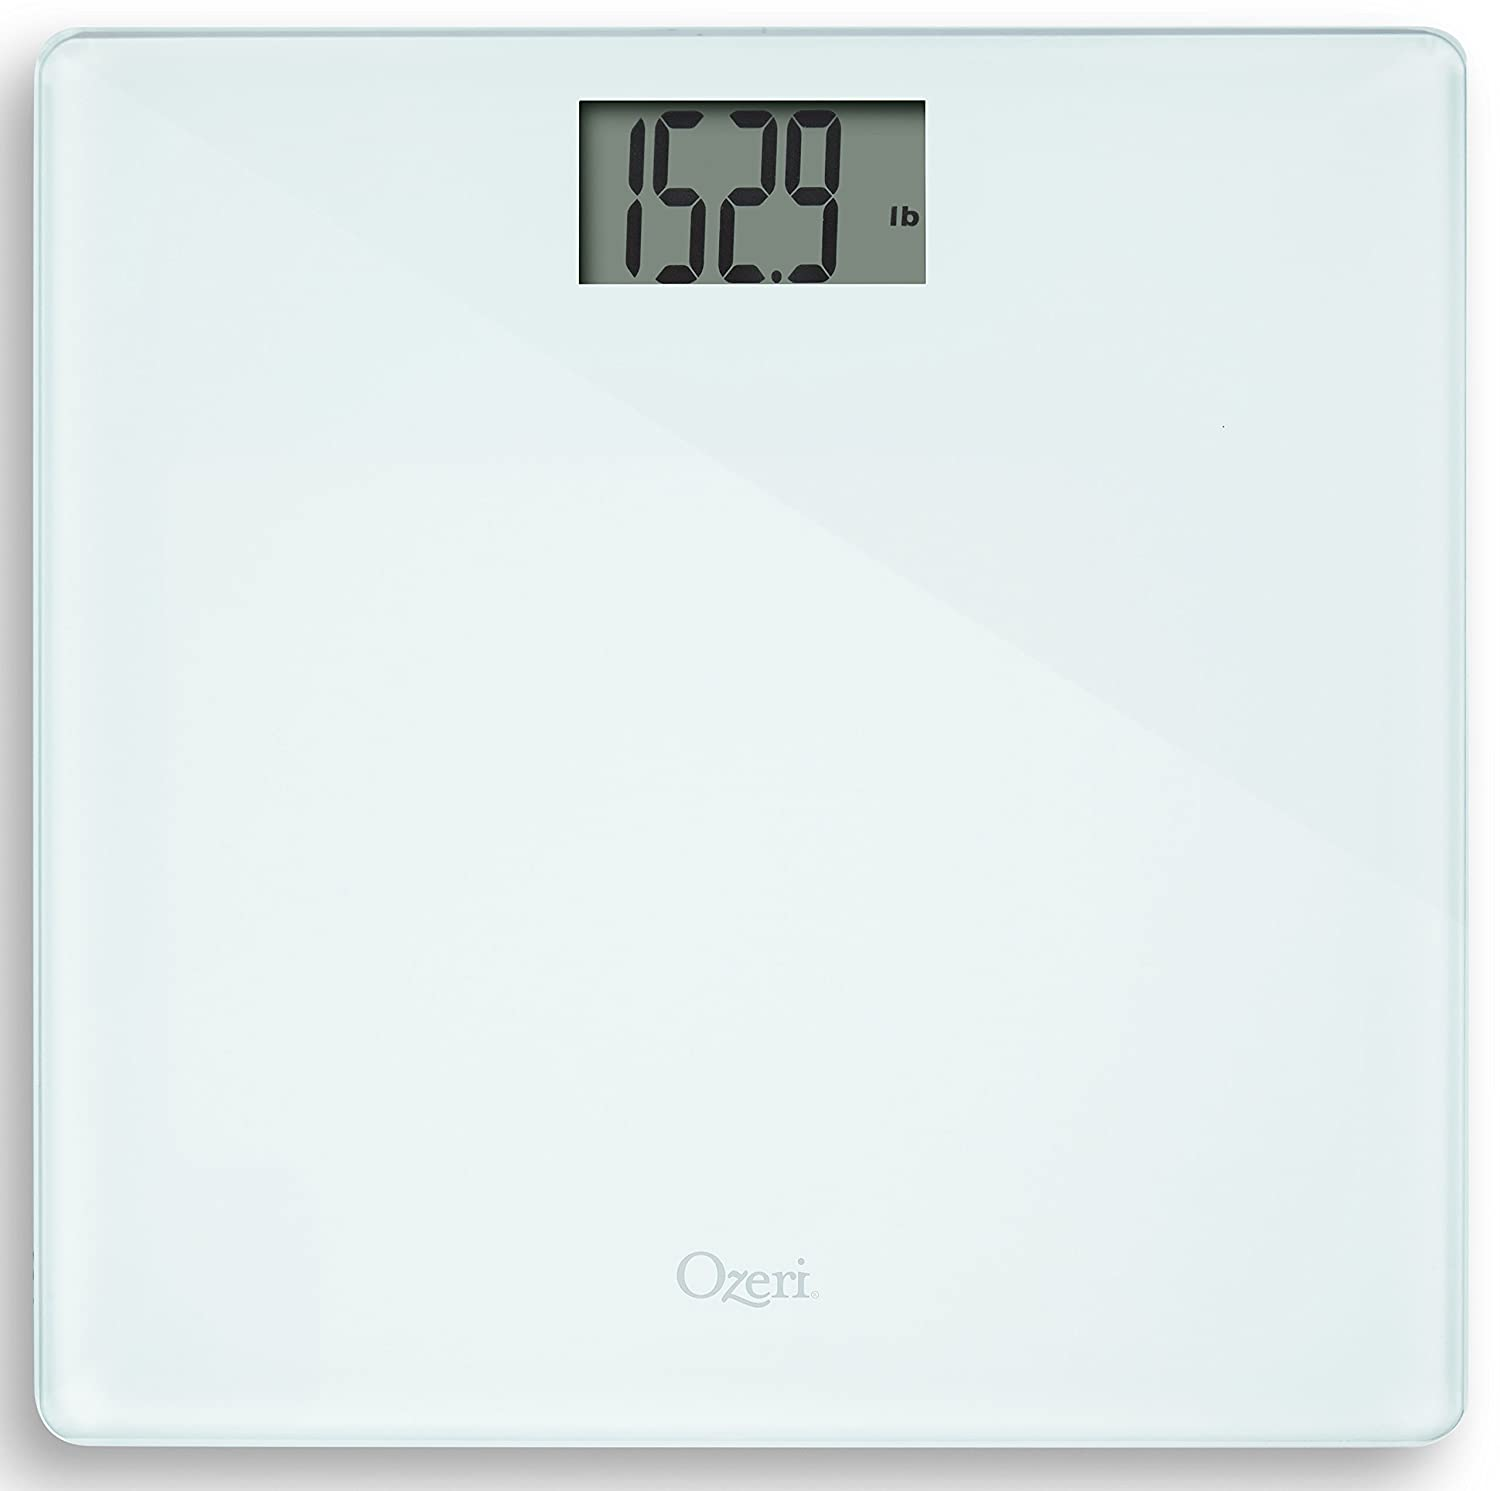 Ozeri Precision Bath Scale (440 lbs / 200 kg) in Tempered Glass, with 50 gram Sensor Technology (0.1 lbs / 0.05 kg) and Infant, Pet & Luggage Tare ZB18-W2